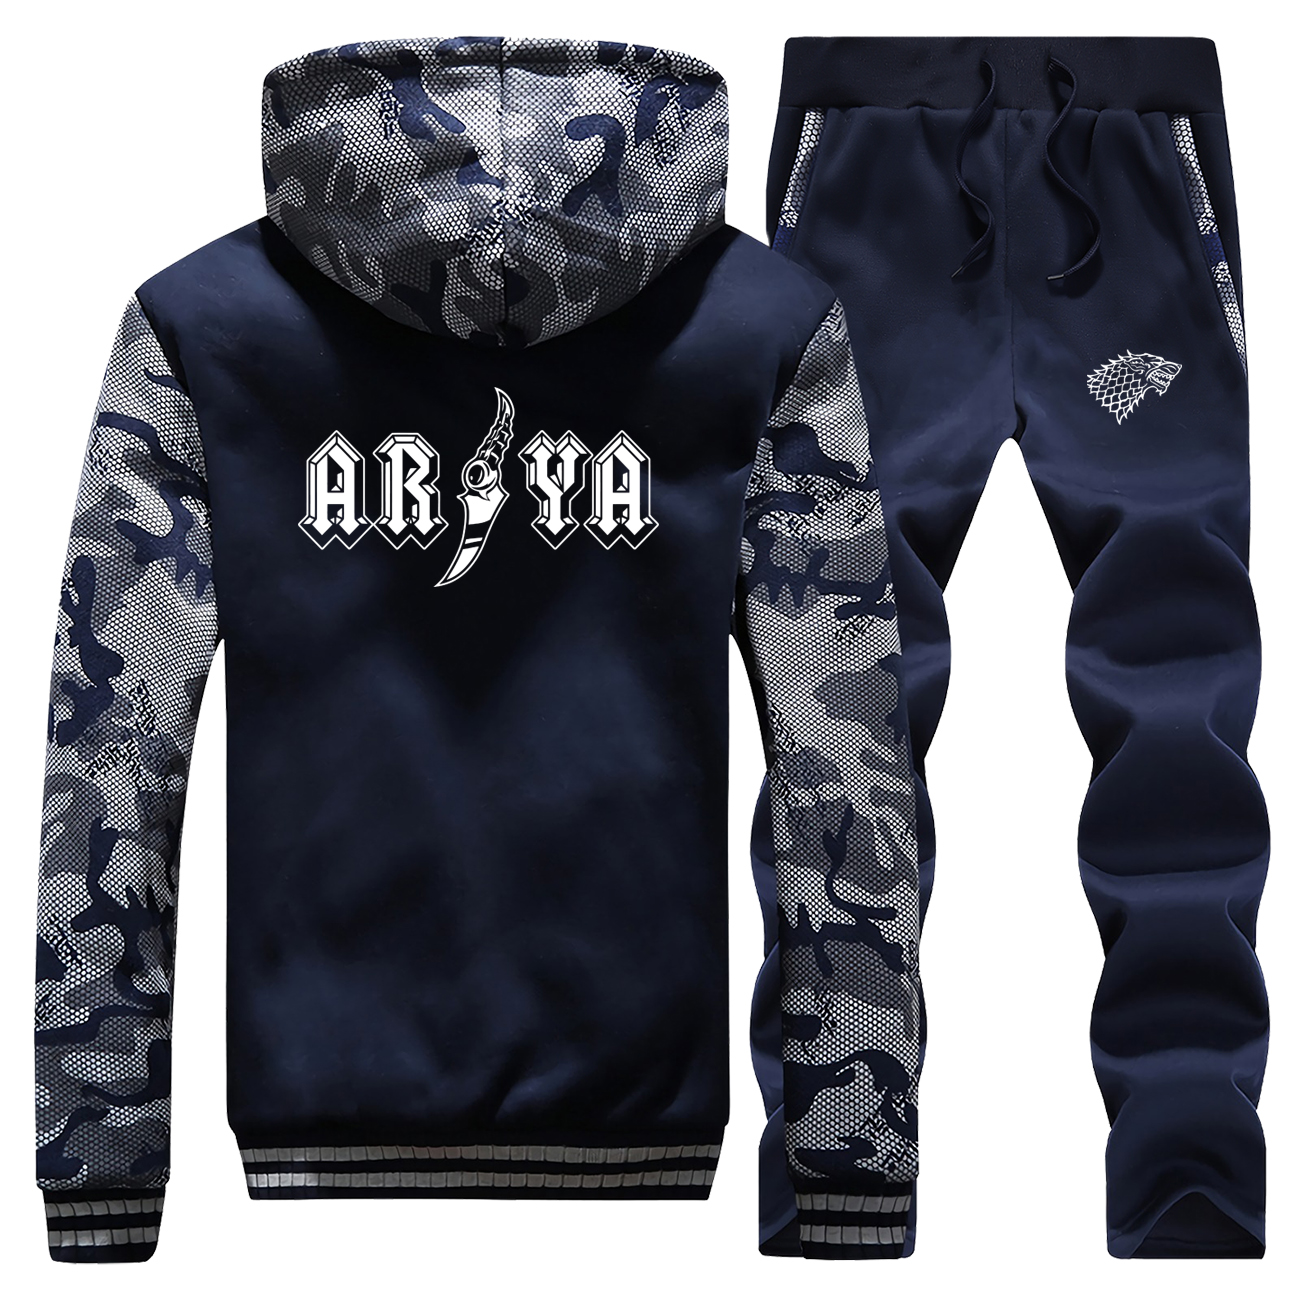 Winter Mens 2 Piece Set ARYA Game Of Thrones Male Coat Zip Thick Warm Hooded Sweatshirt+Trousers Sports Pants Men's Clothes Tops